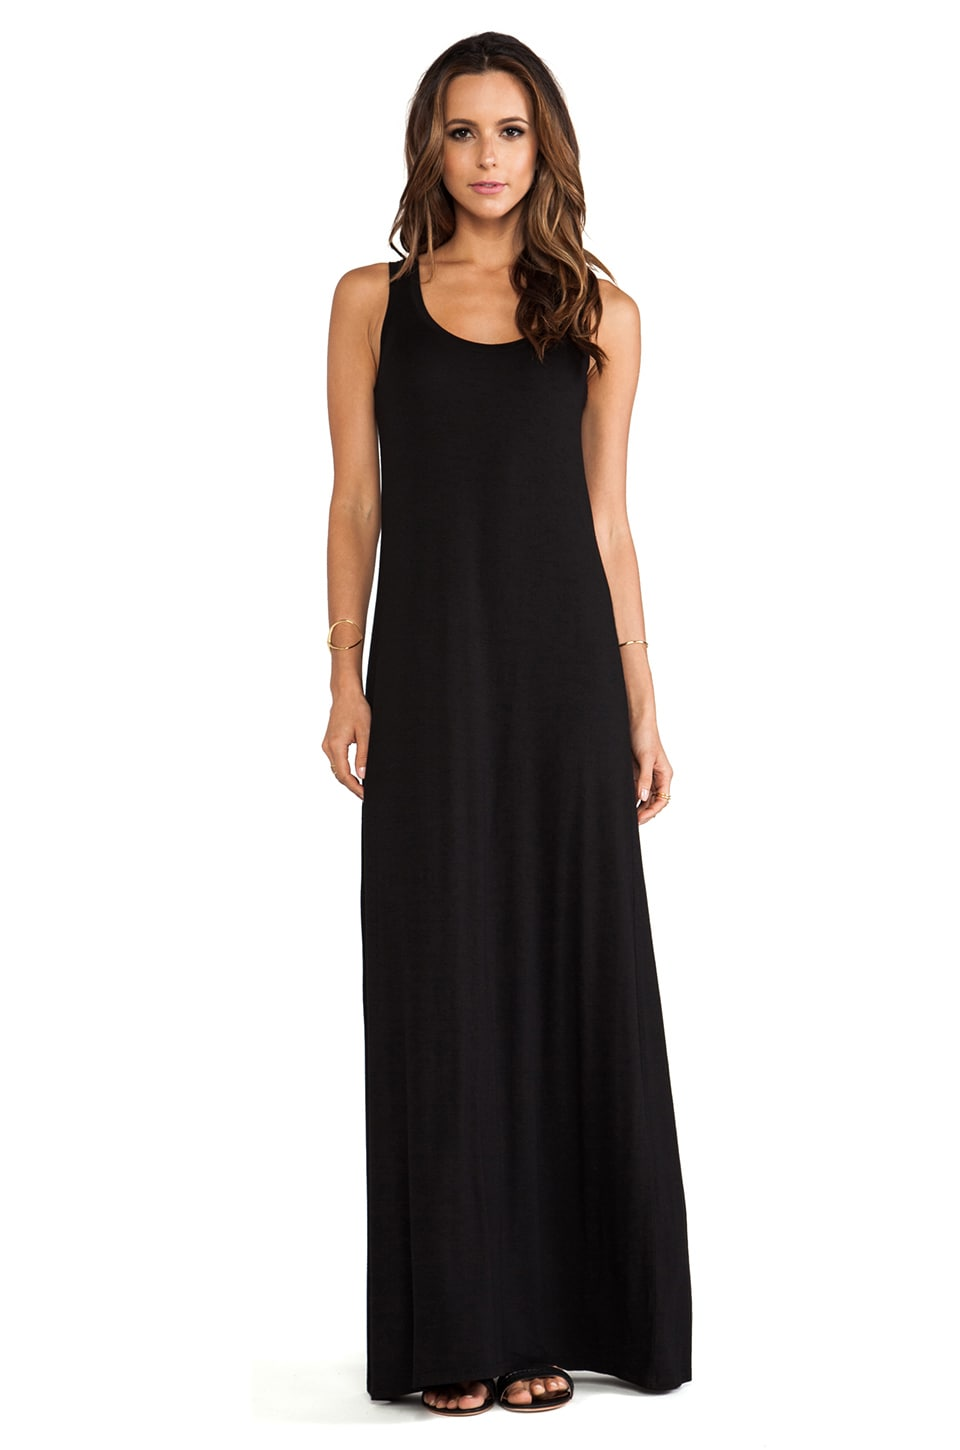 Michael Stars Sonia Sleeveless Tank Maxi Dress in Black